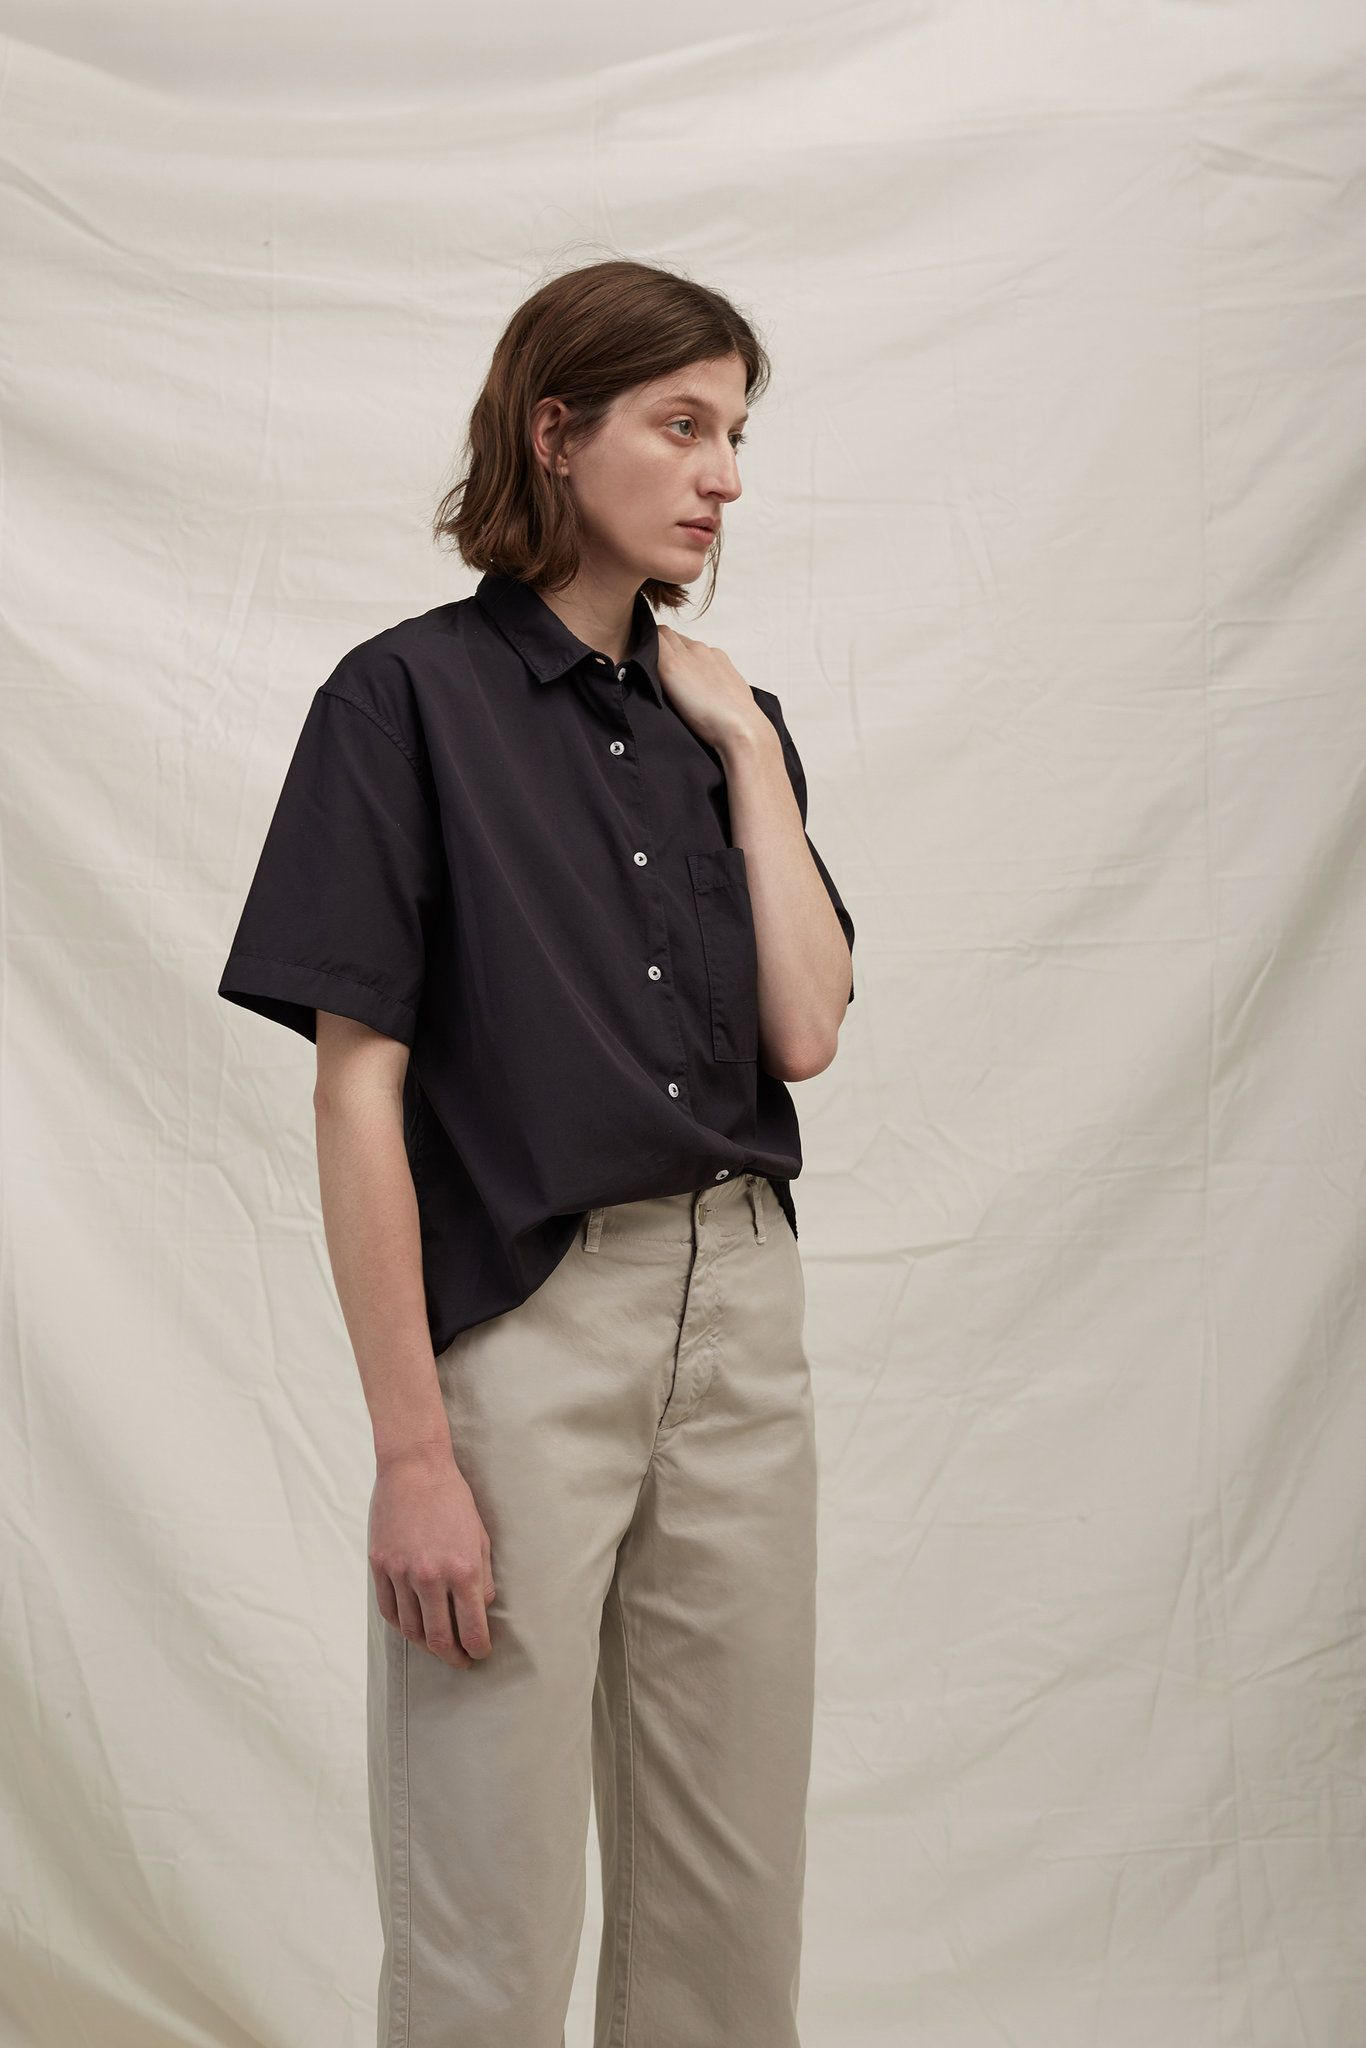 The New York retailer and the American men's wear brand have released a small collection of women's pieces.